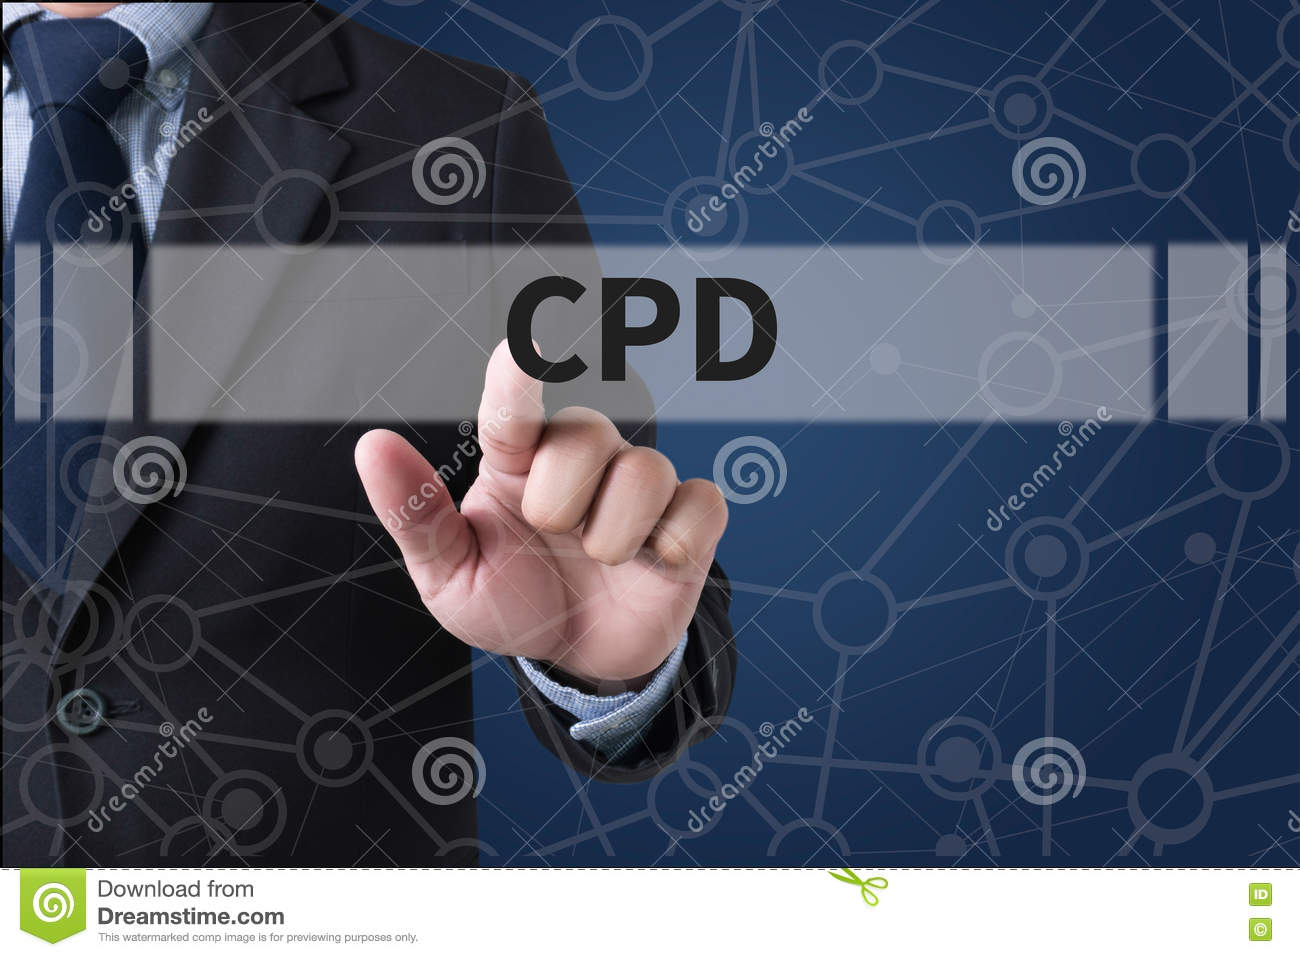 evalute cpd in own work envirionment Read chapter 5 envisioning a better system of continuing professional development: today in the united states, the professional health workforce is not co.